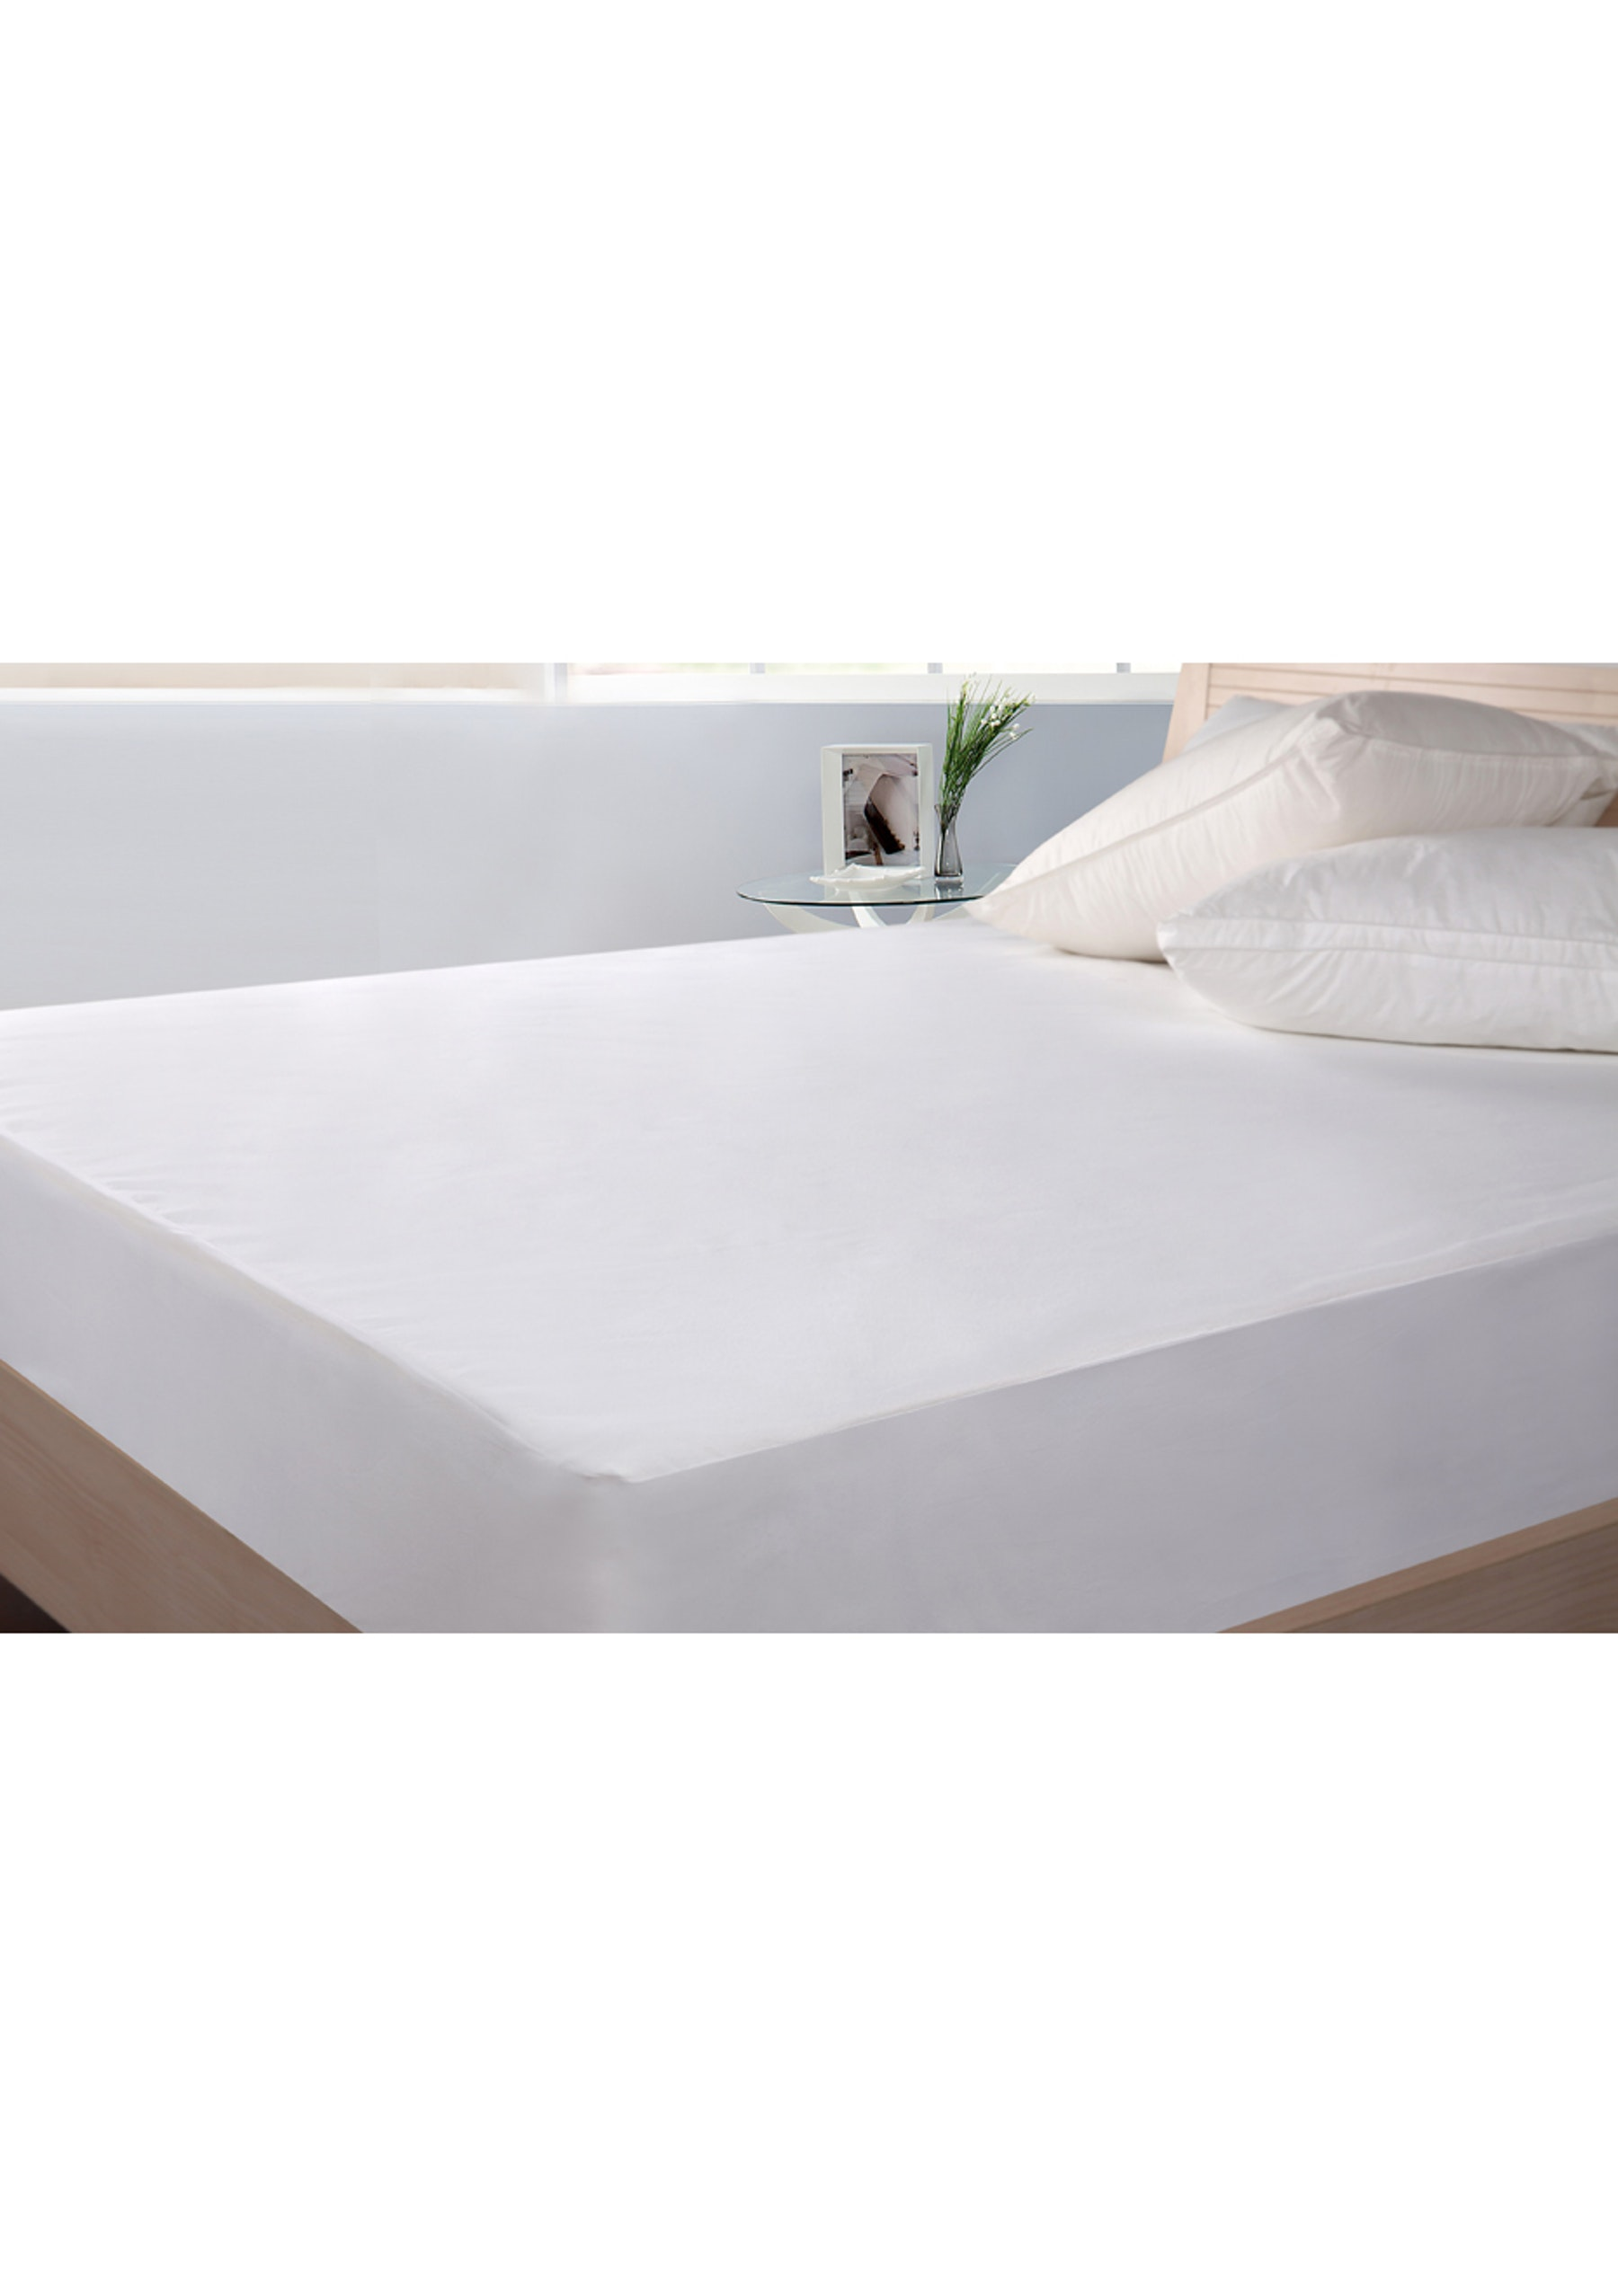 King Bed Cloudland Waterproof Mattress Protector Luxe Feather